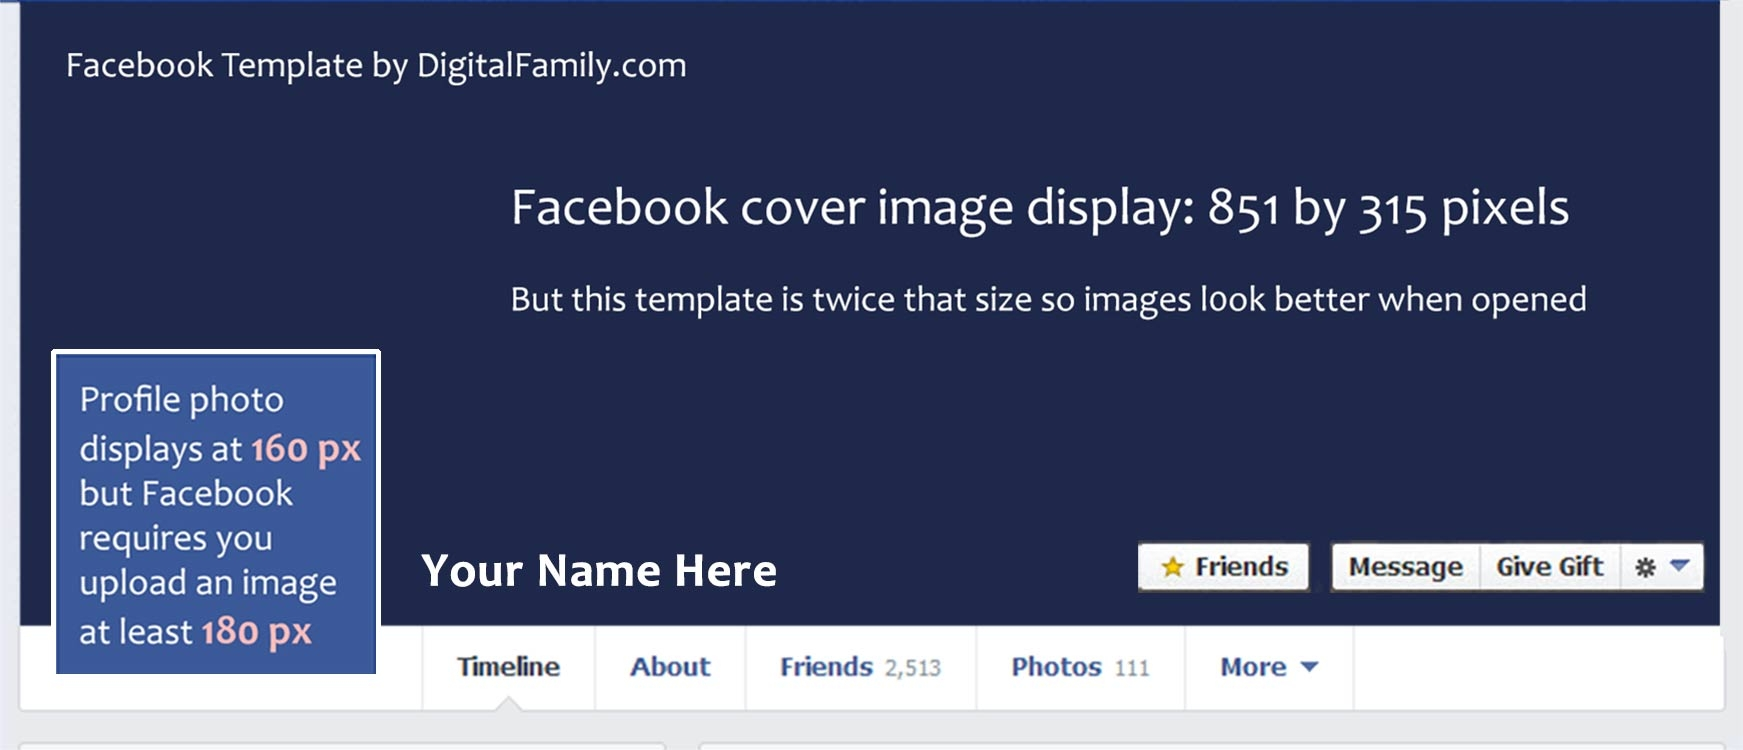 social media website mockups facebook timeline cover page psd design mockup facebook template 3 2014 button 1311111111111121